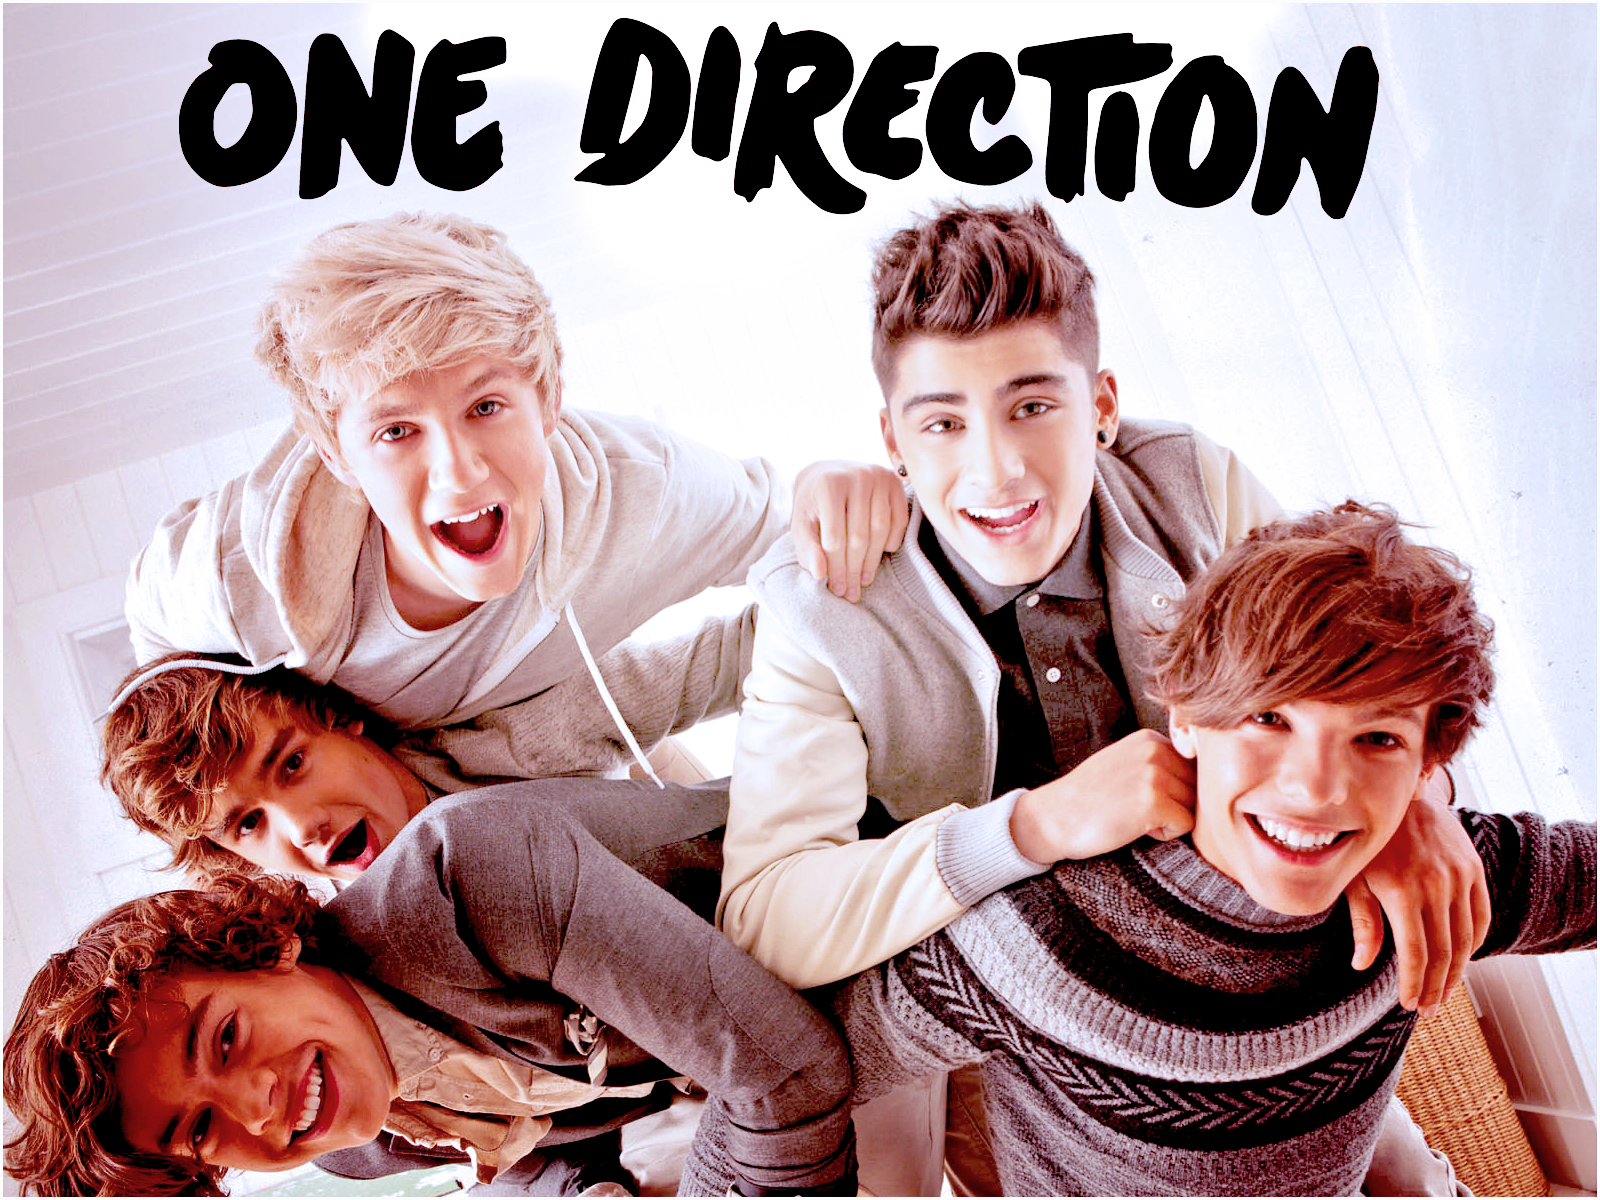 Image hd one direction wallpaperg one direction wiki hd one direction wallpaperg voltagebd